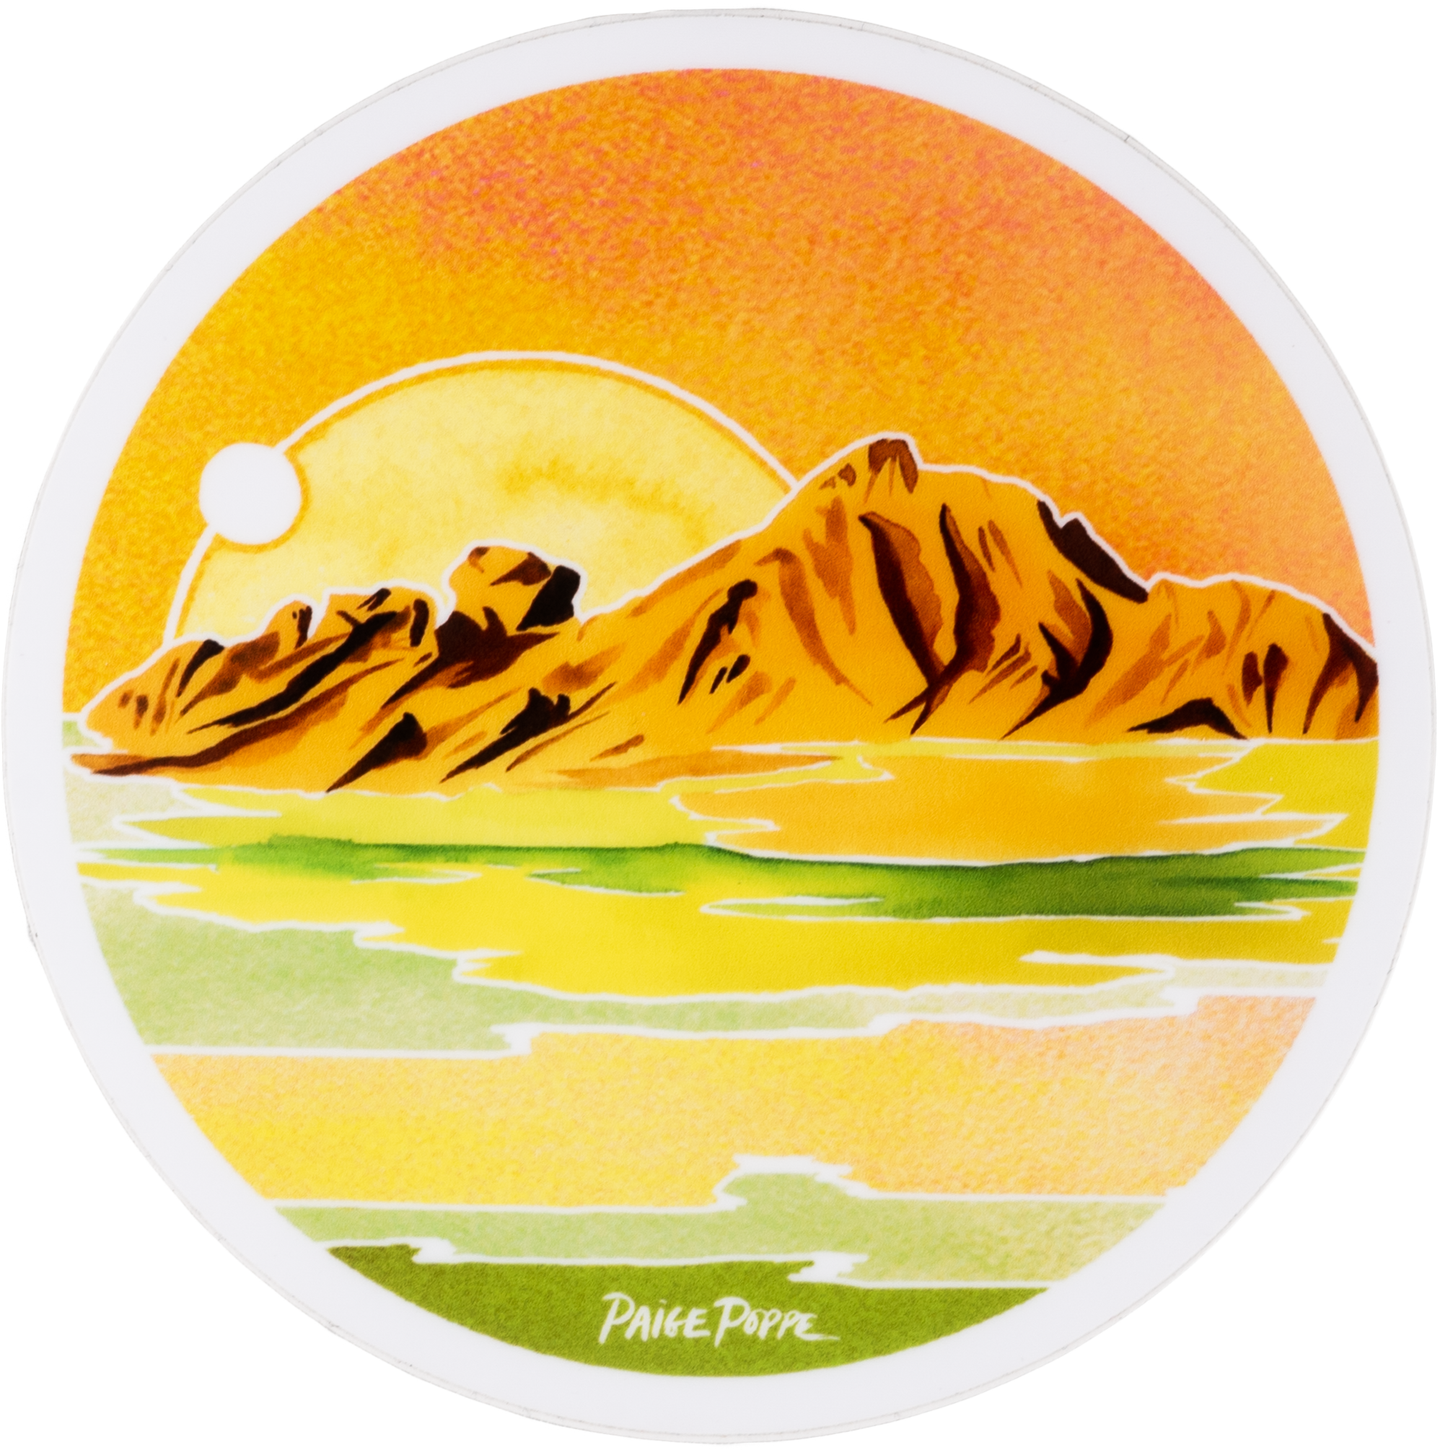 Round Desert Design Sticker With Mountains and Sun